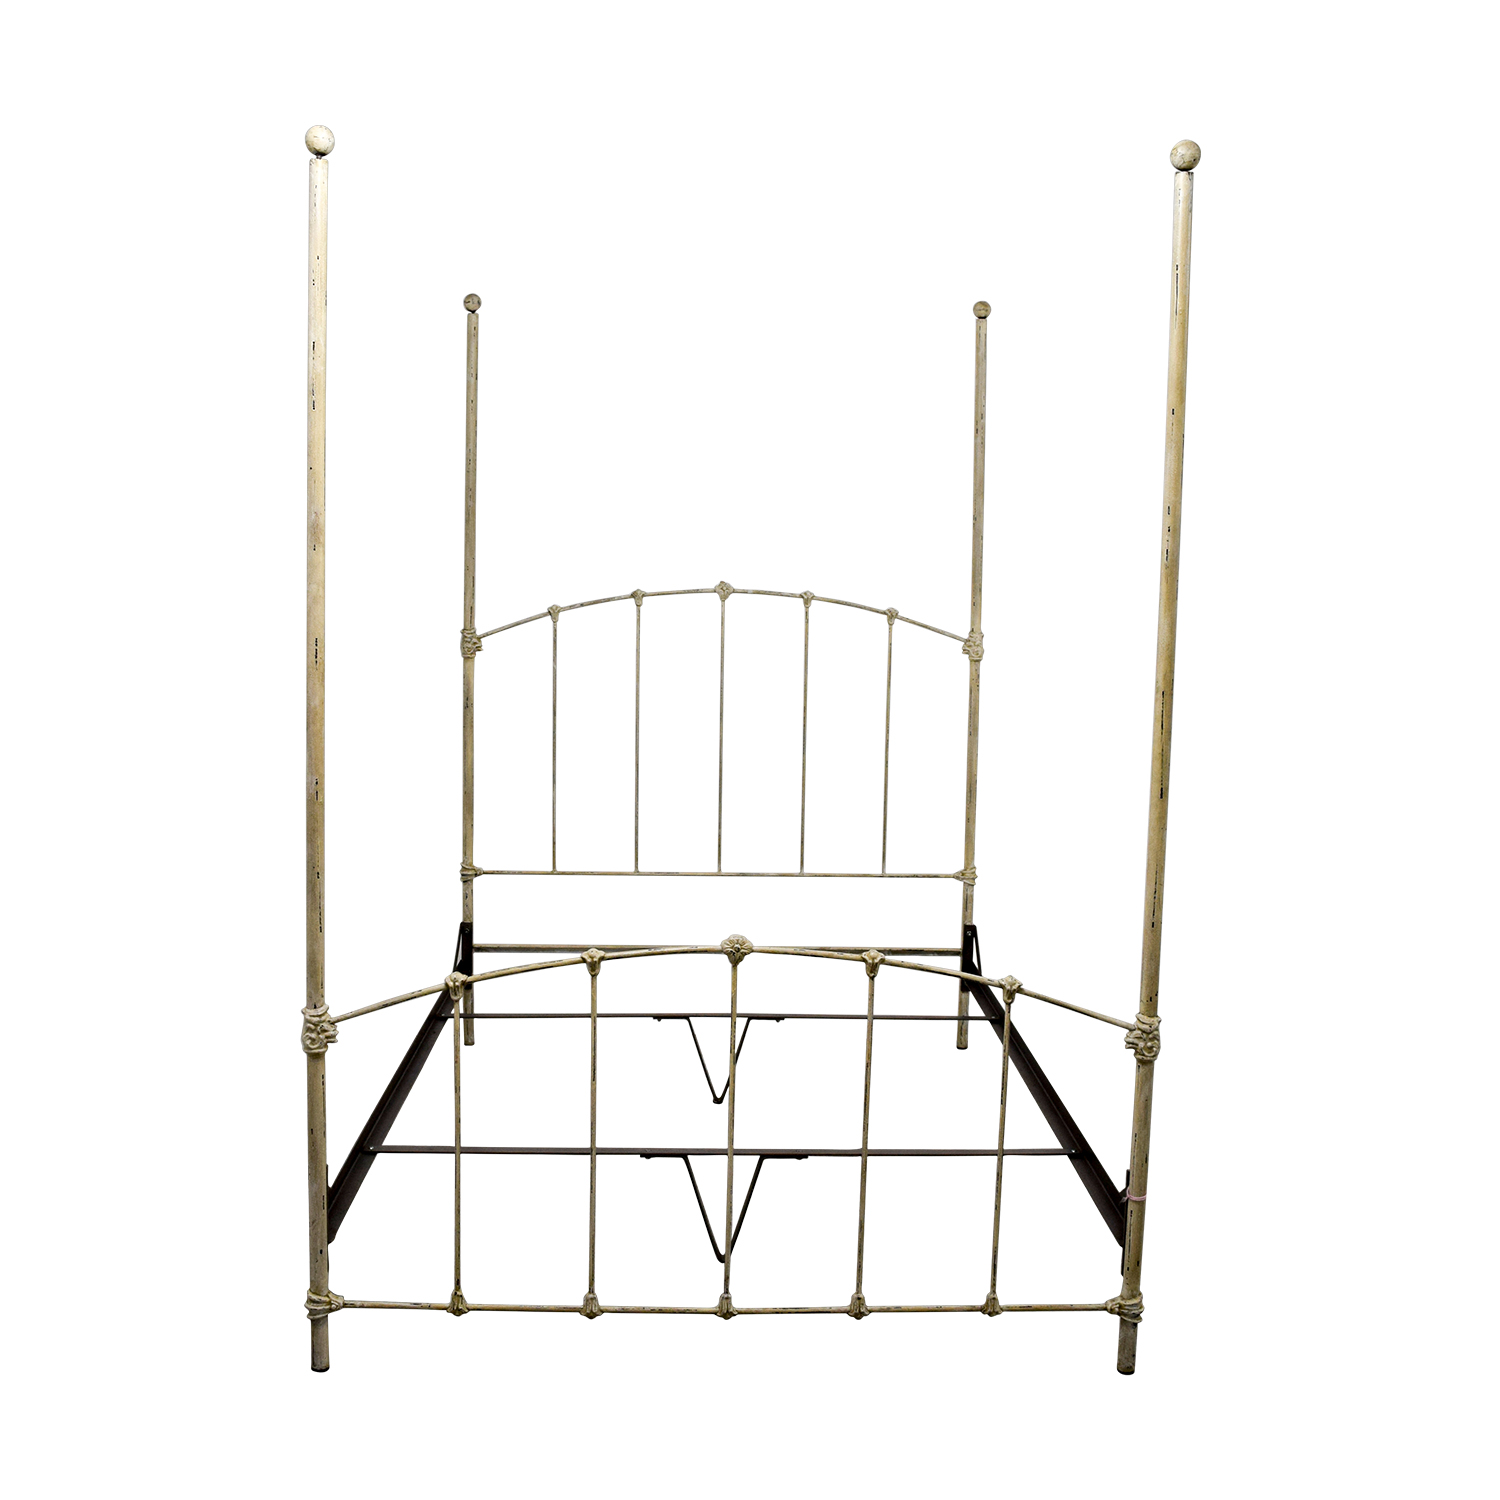 Wrought Iron Distressed White Four Poster Queen Bed / Beds